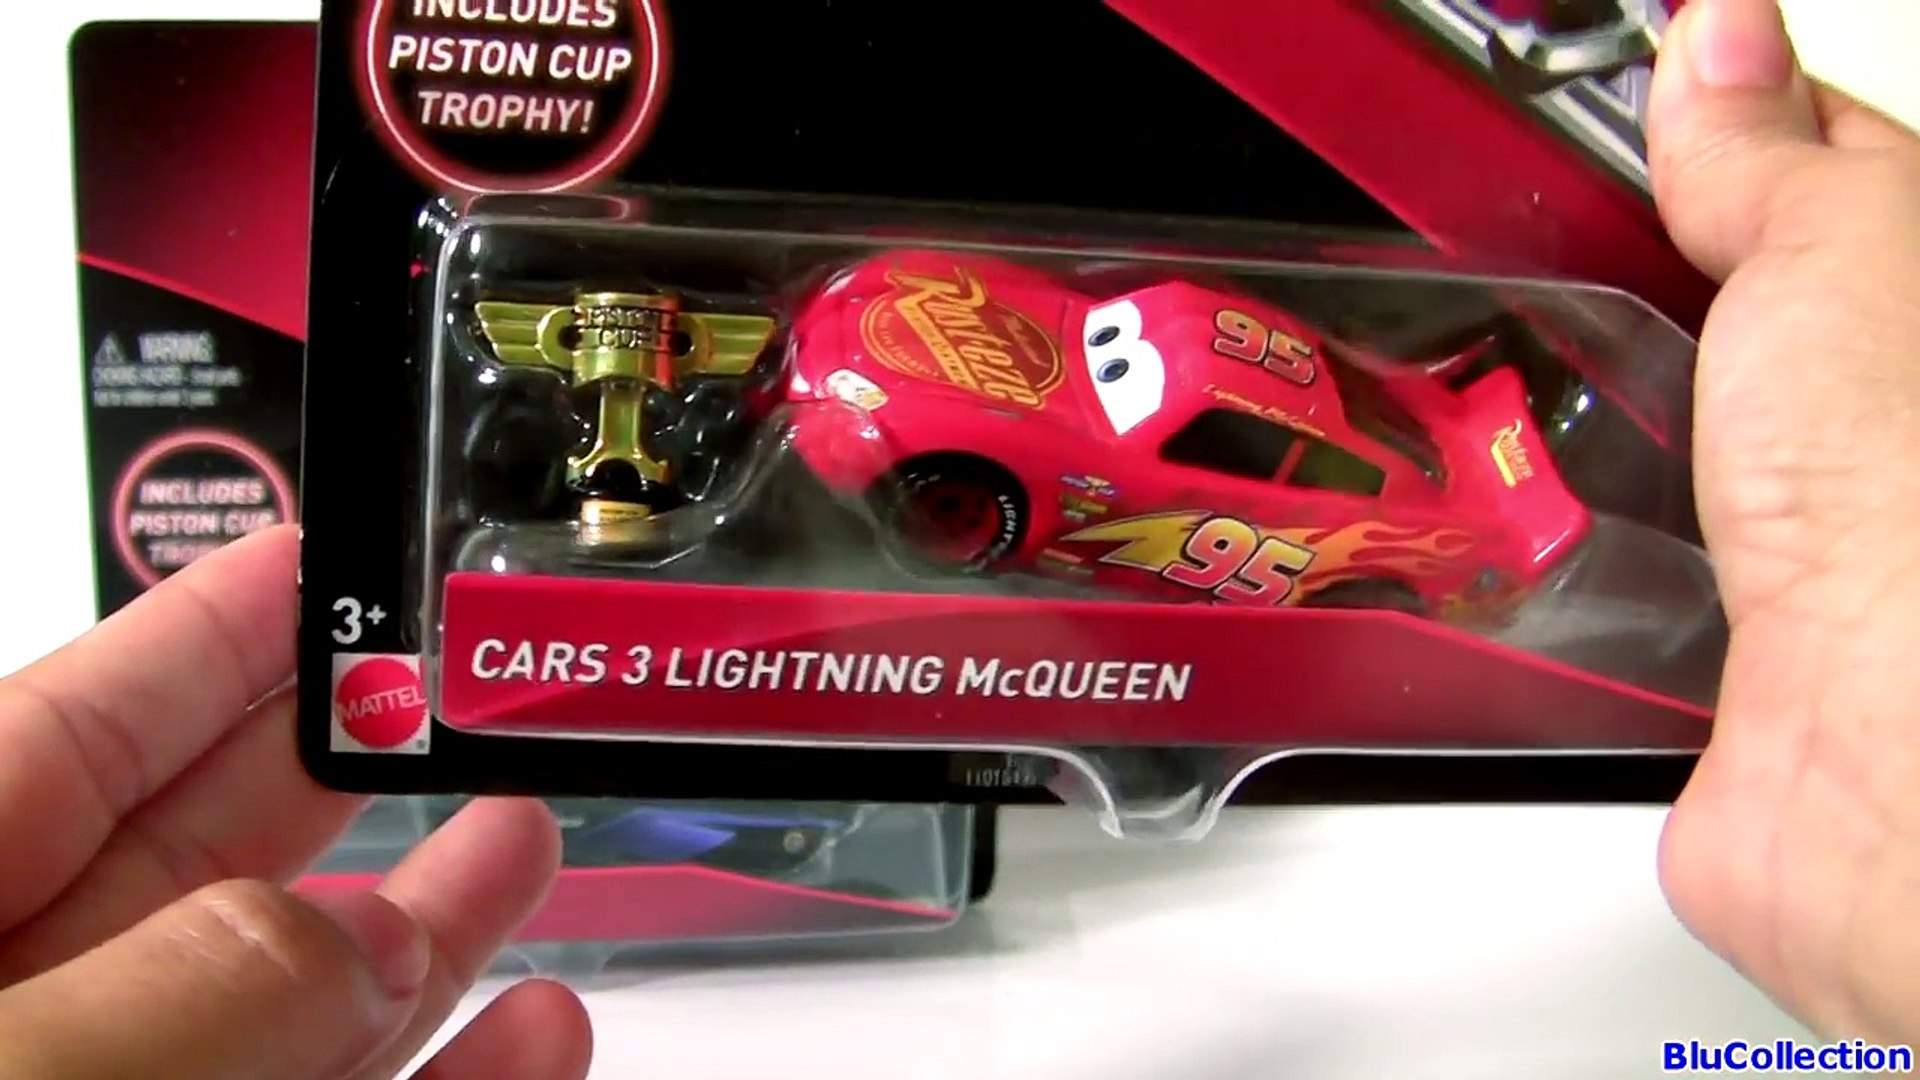 Cars 3 Jackson Storm With Piston Cup Trophy Cars 3 Lightning